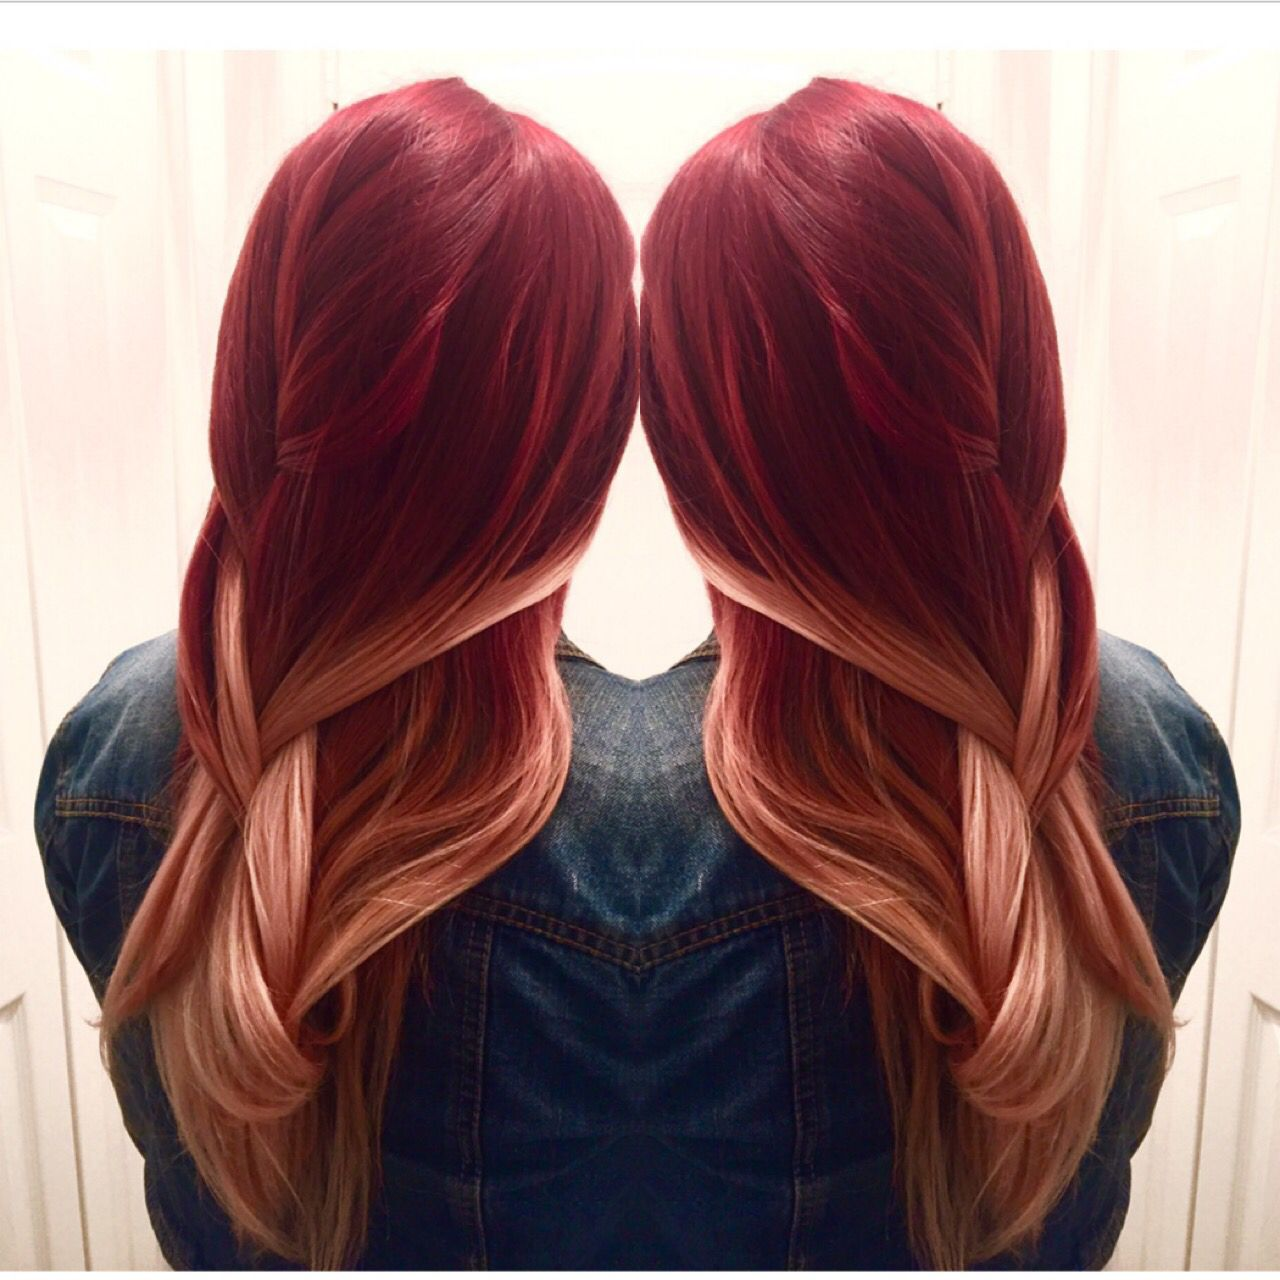 red to blonde balayage ombr hair in thousand colors. Black Bedroom Furniture Sets. Home Design Ideas